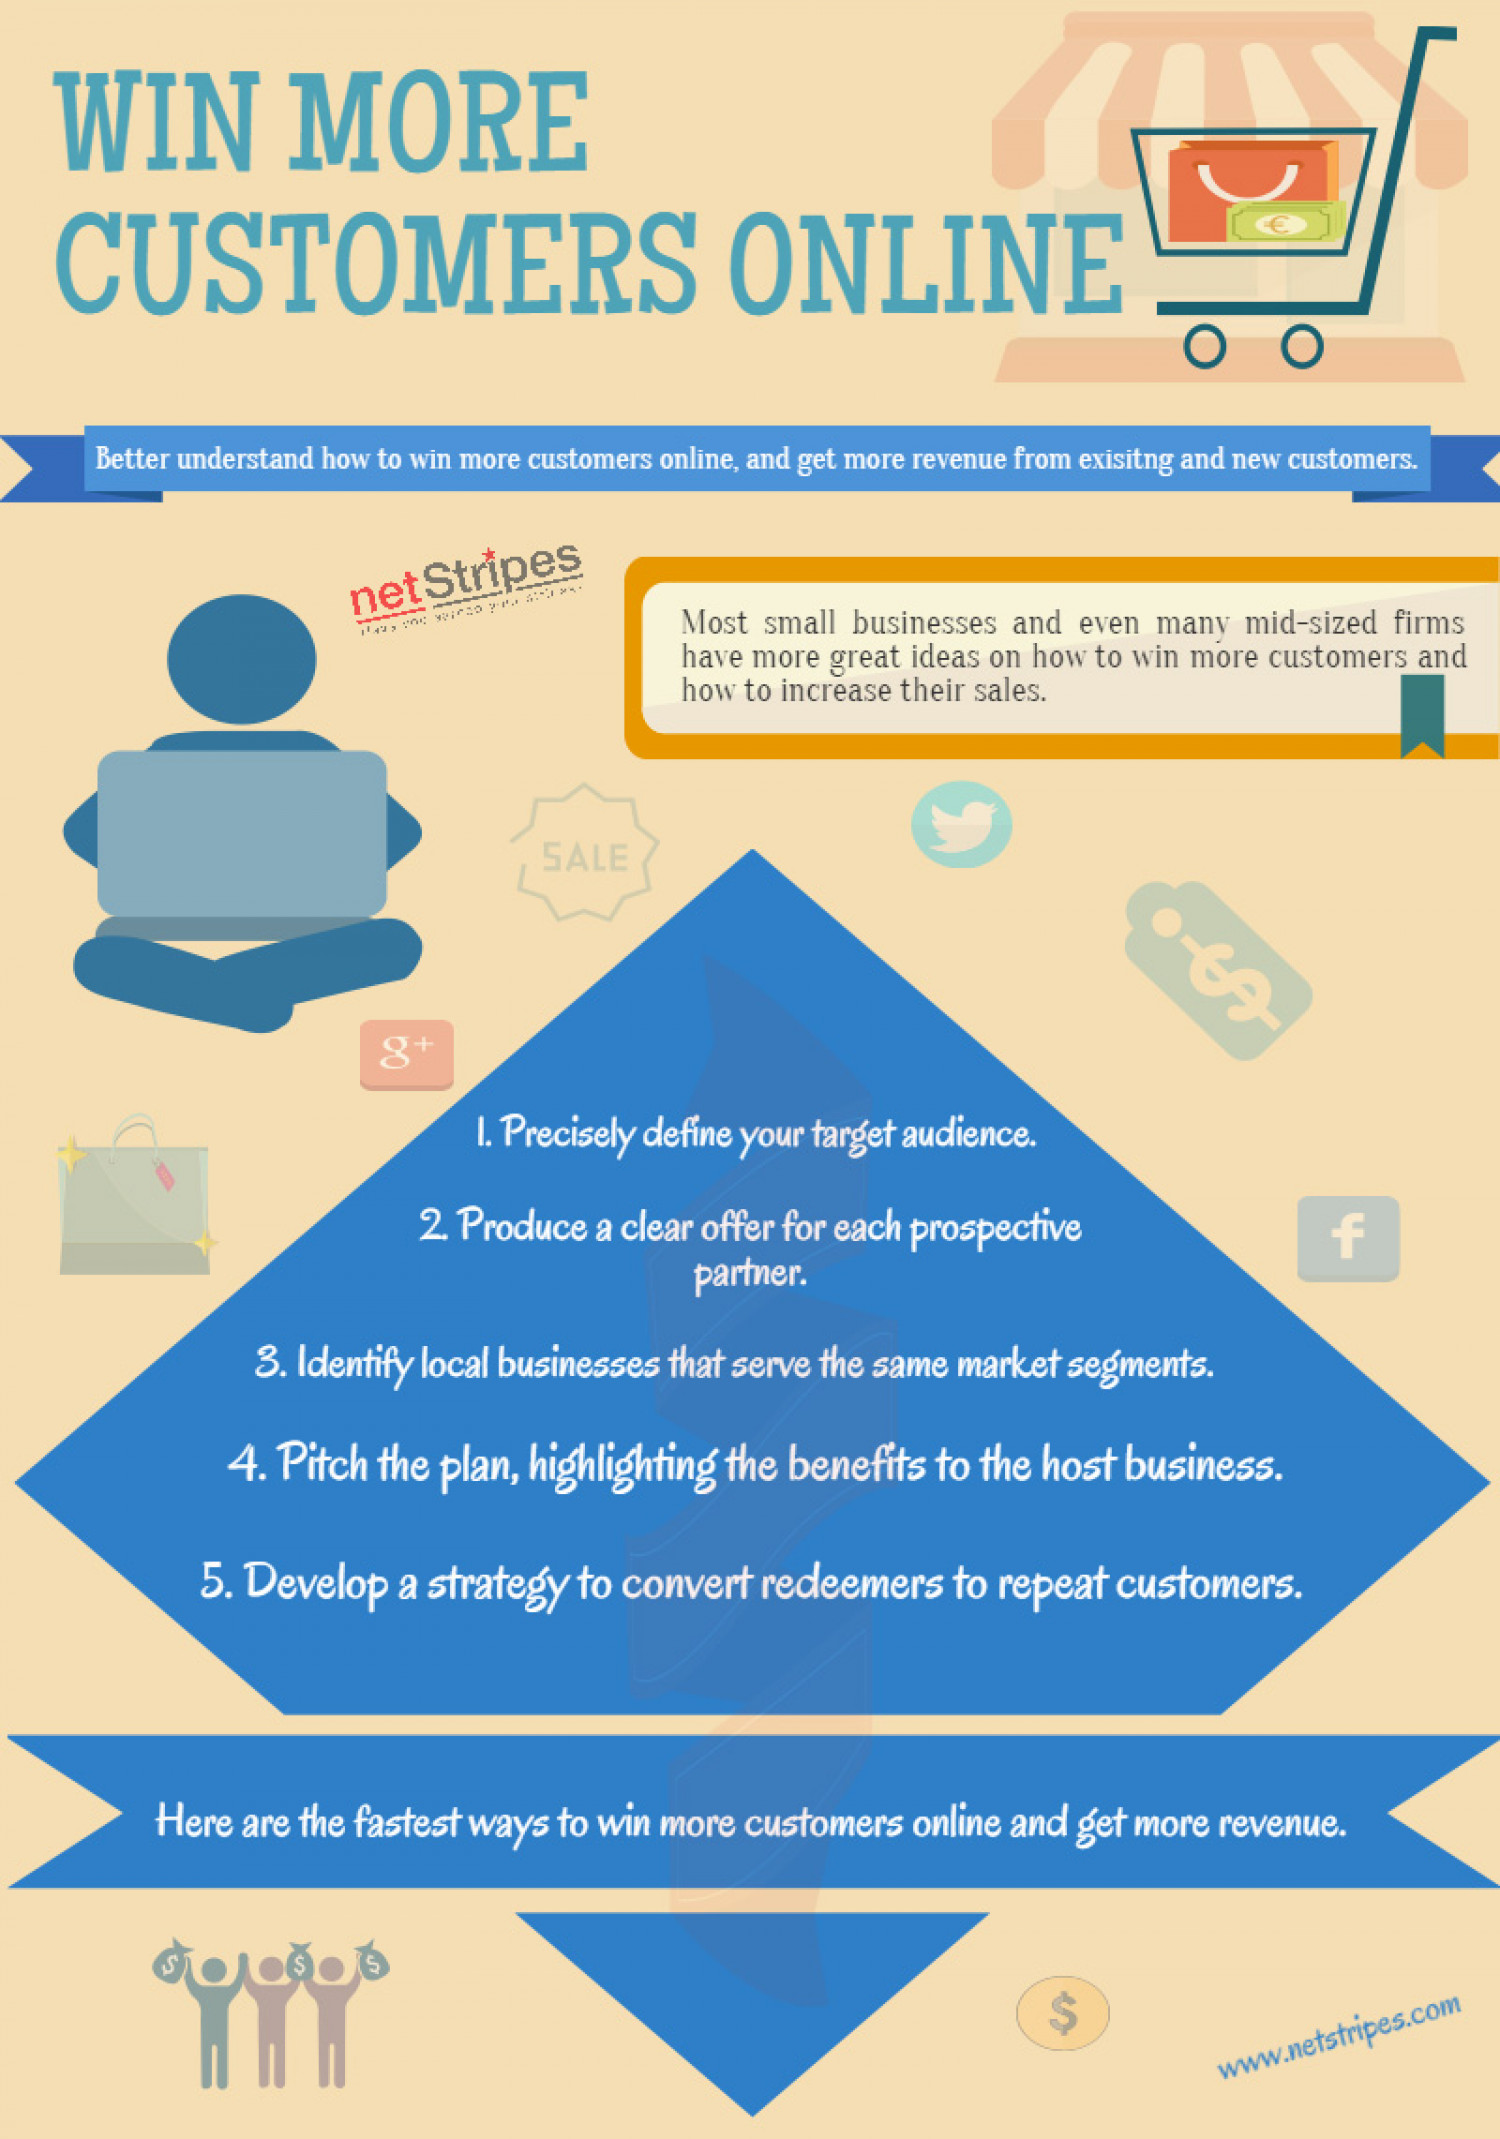 Win More Customers Online Infographic